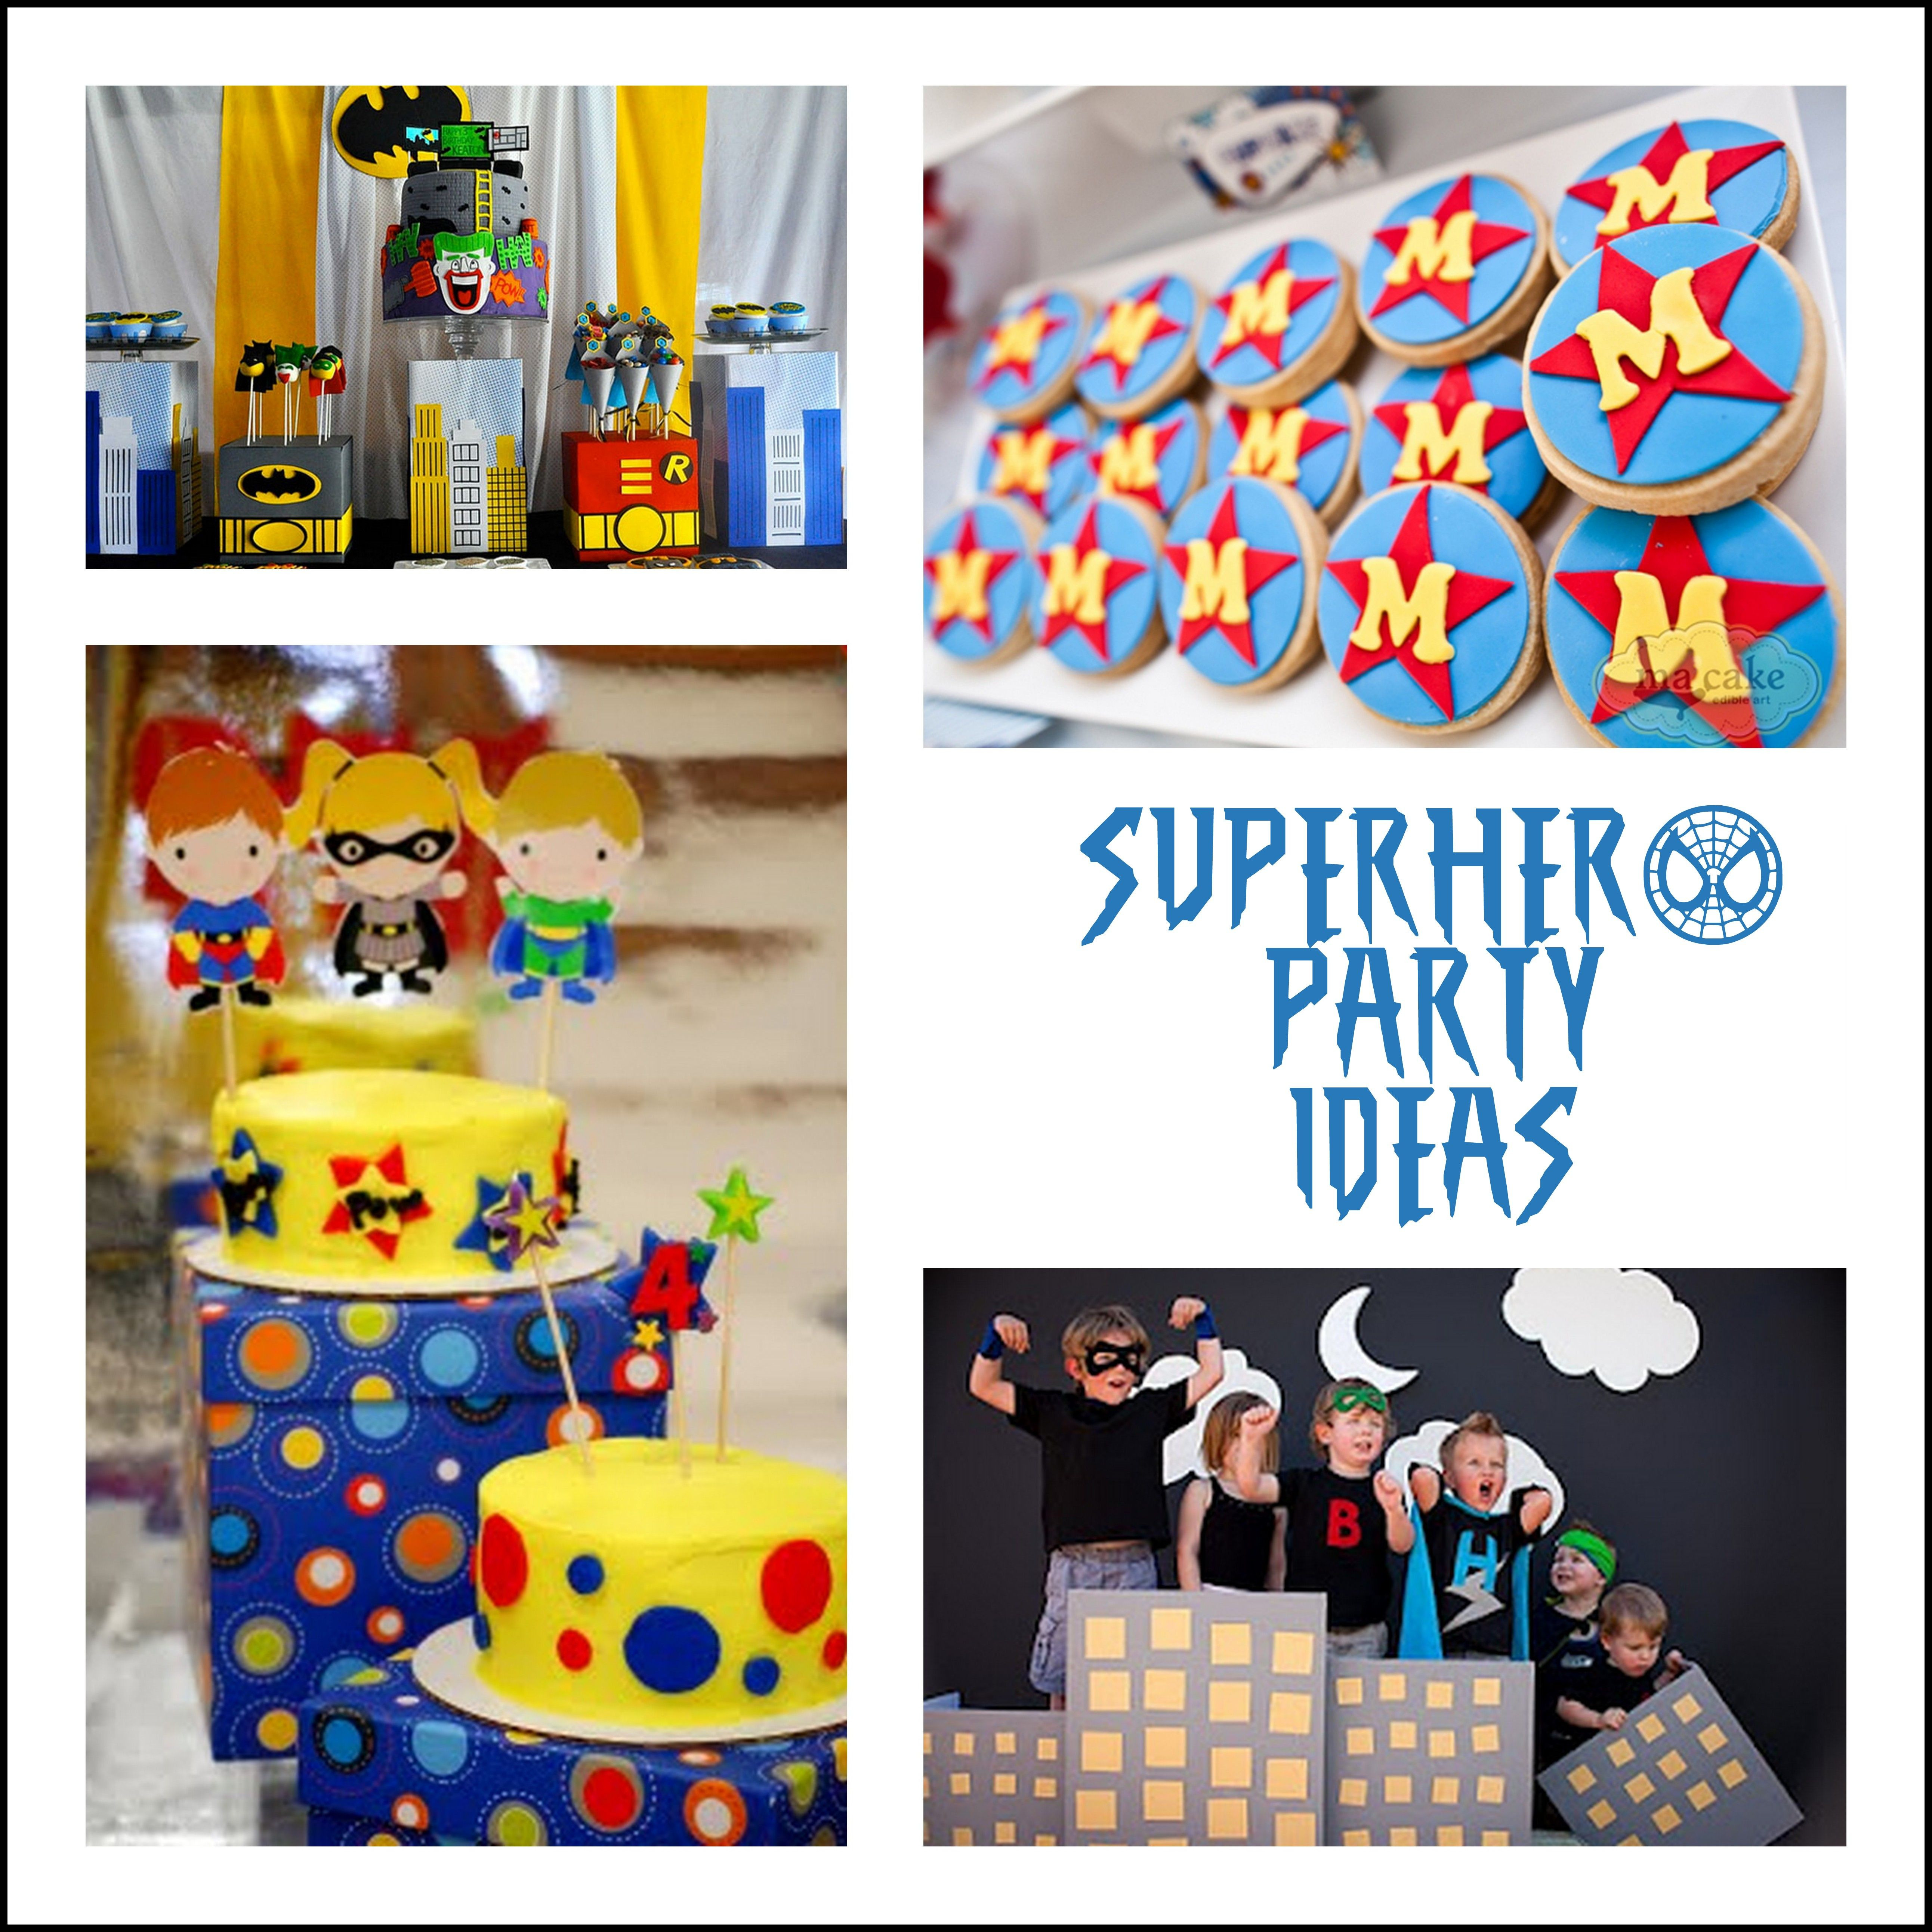 Best ideas about Superhero Birthday Party Ideas . Save or Pin superhero party ideas Make Create Do Now.